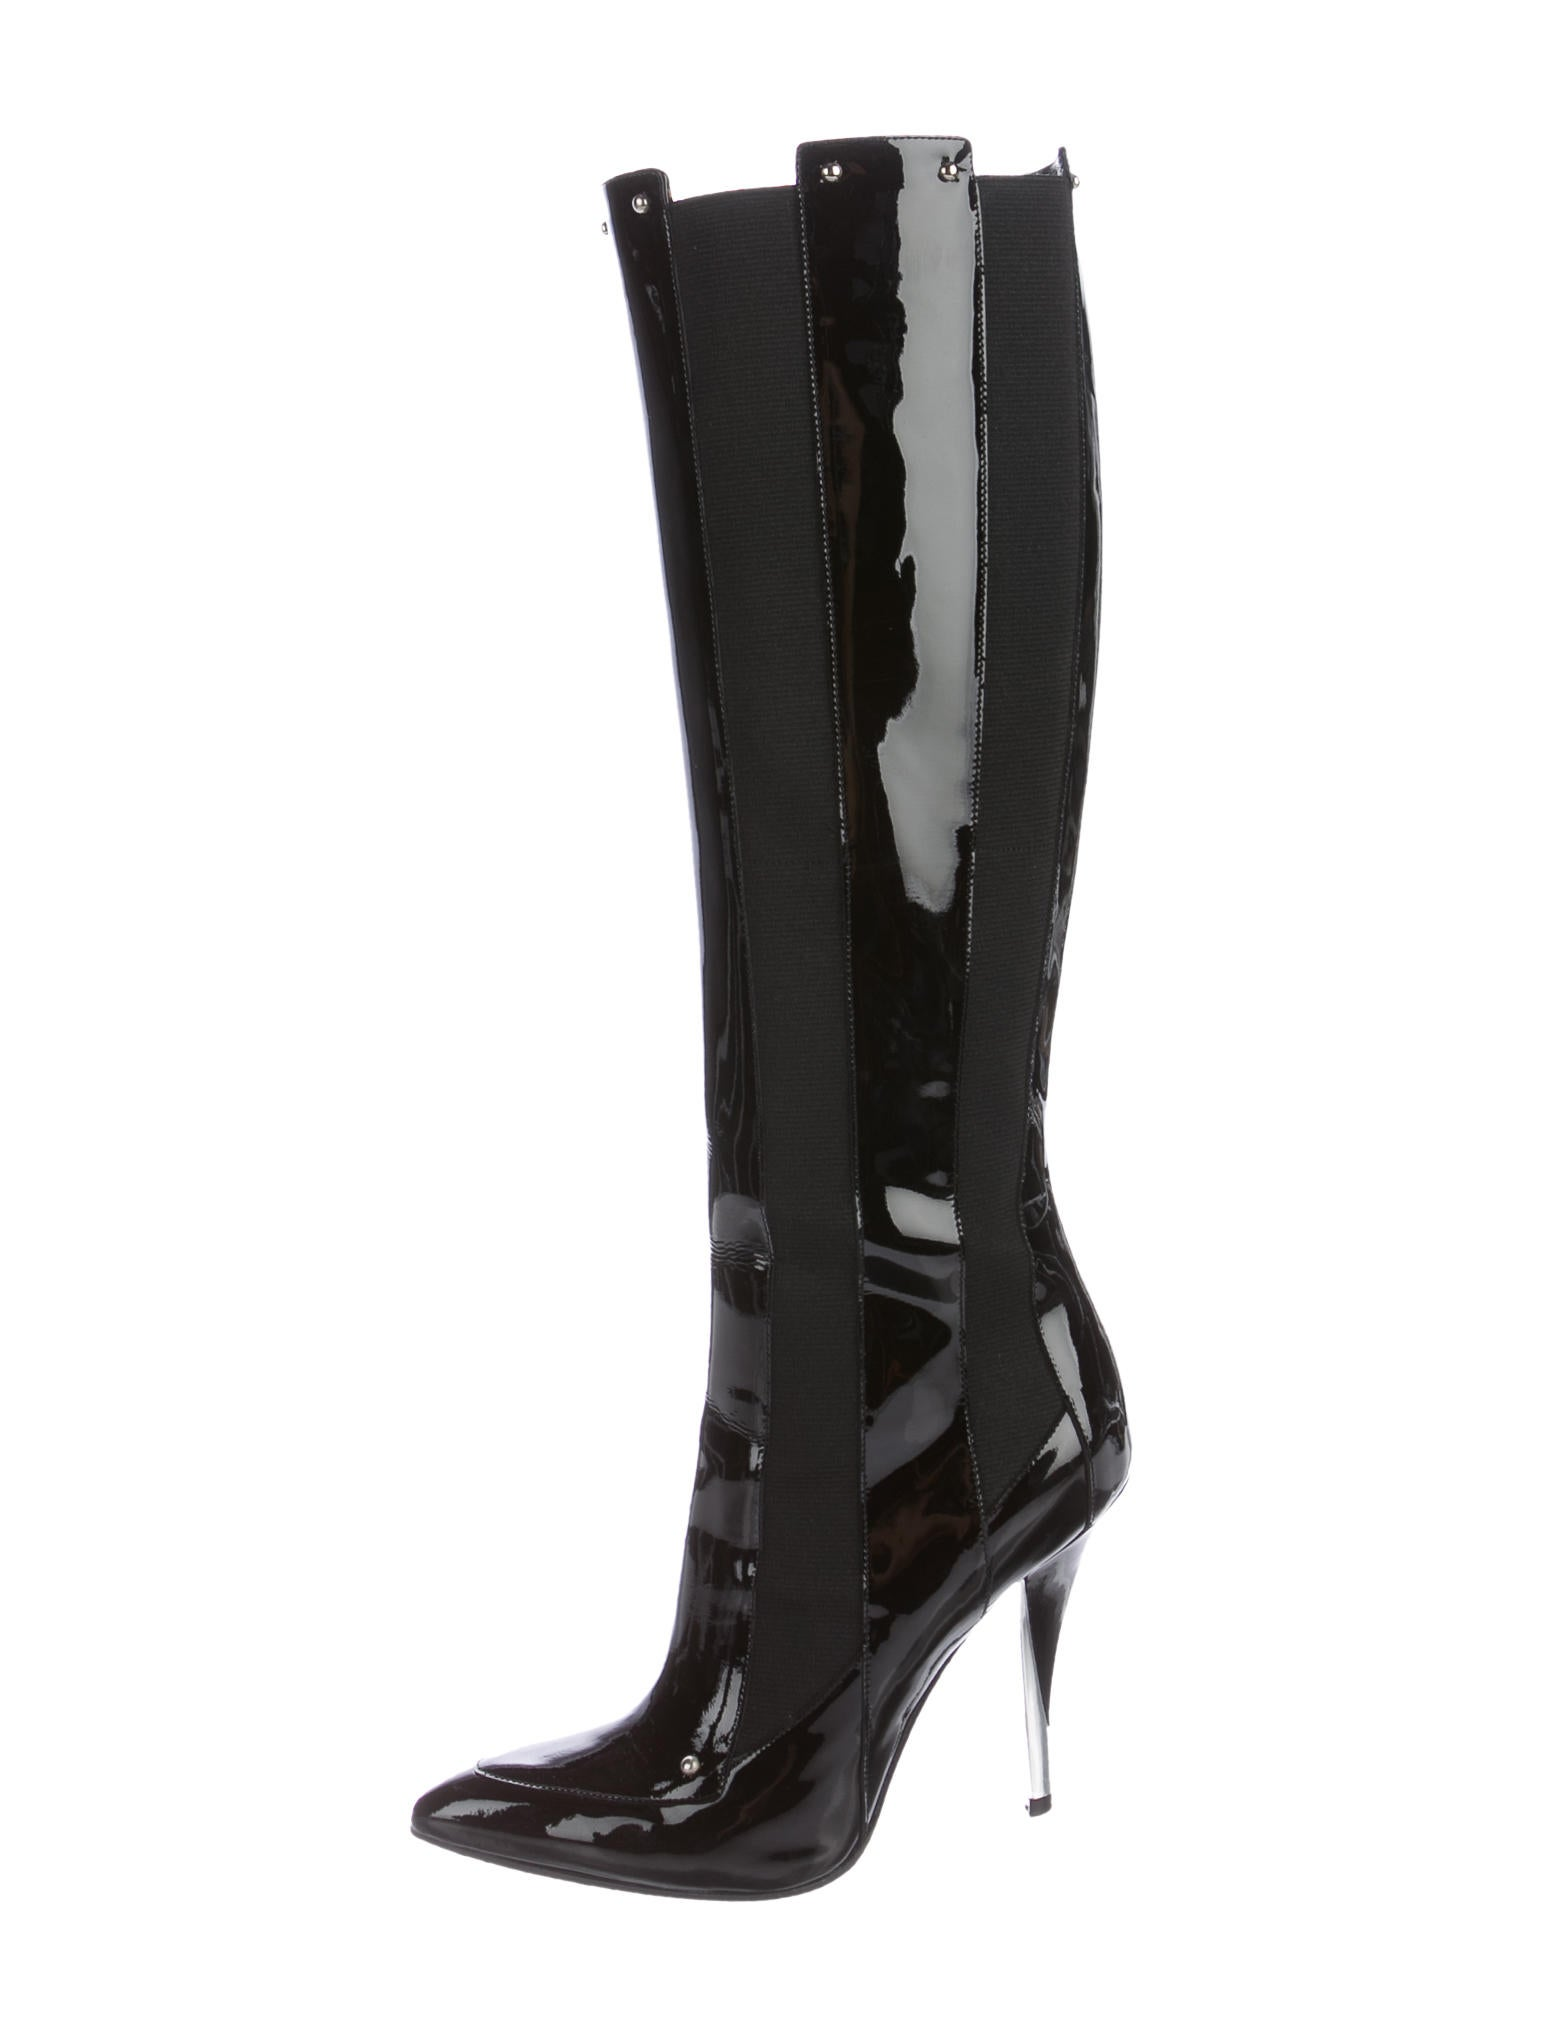 casadei patent leather knee high boots shoes cei23231